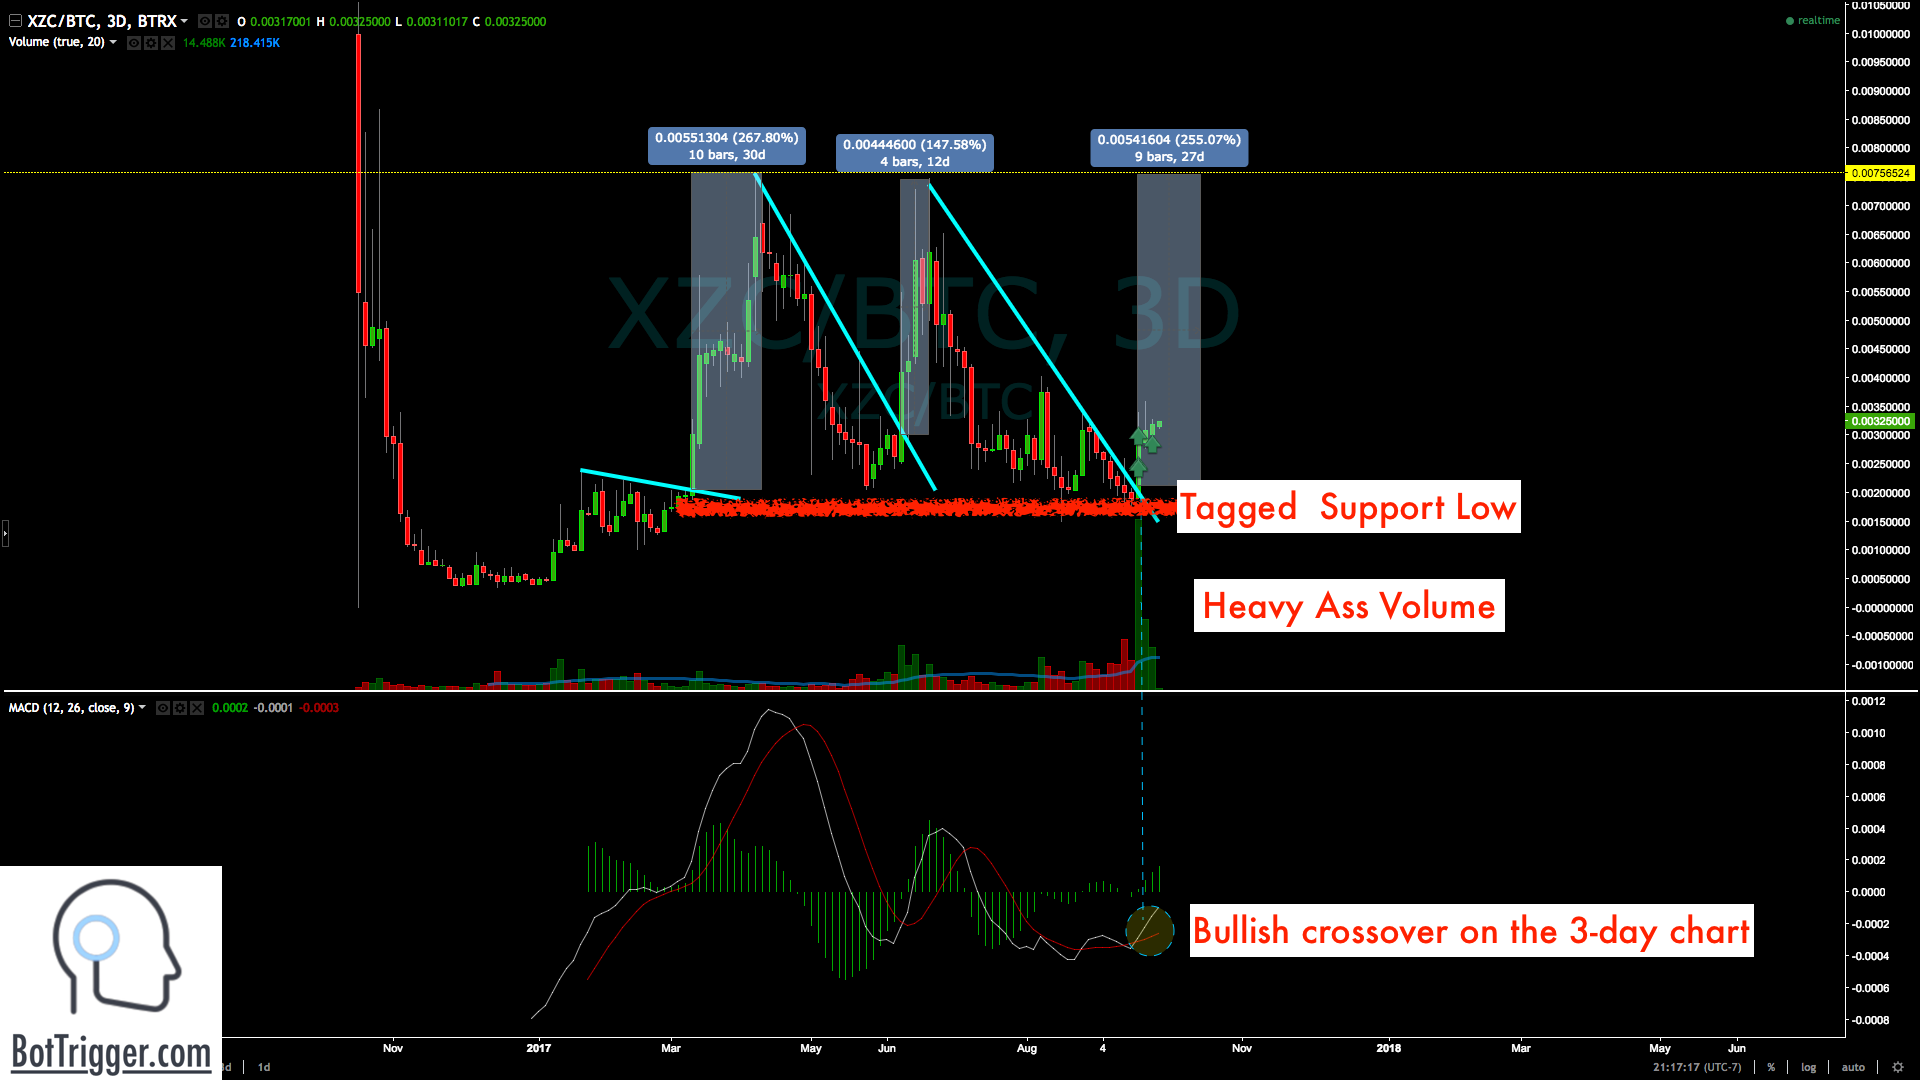 Market Cap $40 million, breaking out on the following technical setup